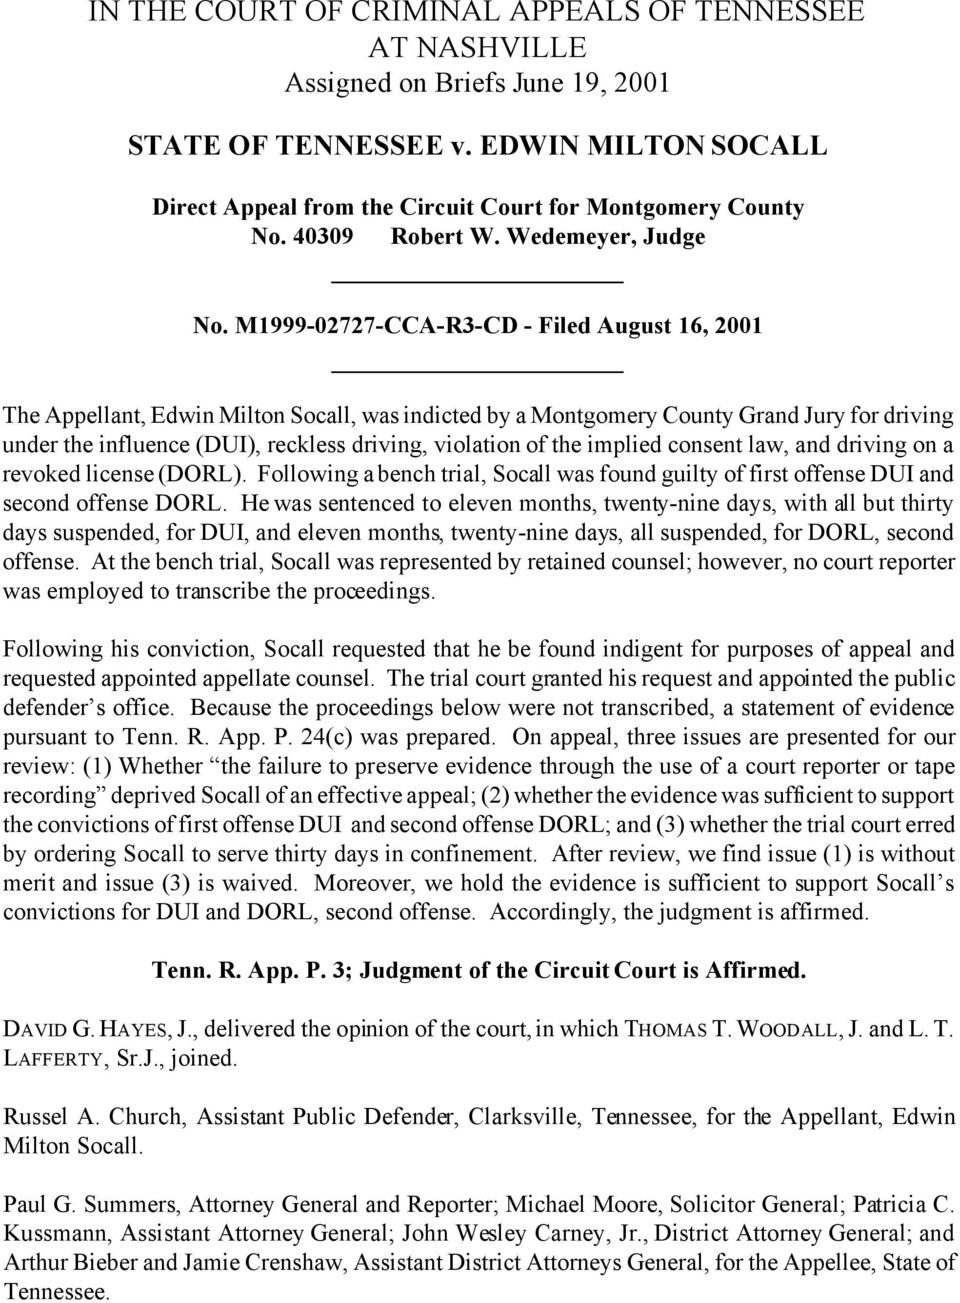 M1999-02727-CCA-R3-CD - Filed August 16, 2001 The Appellant, Edwin Milton Socall, was indicted by a Montgomery County Grand Jury for driving under the influence (DUI), reckless driving, violation of